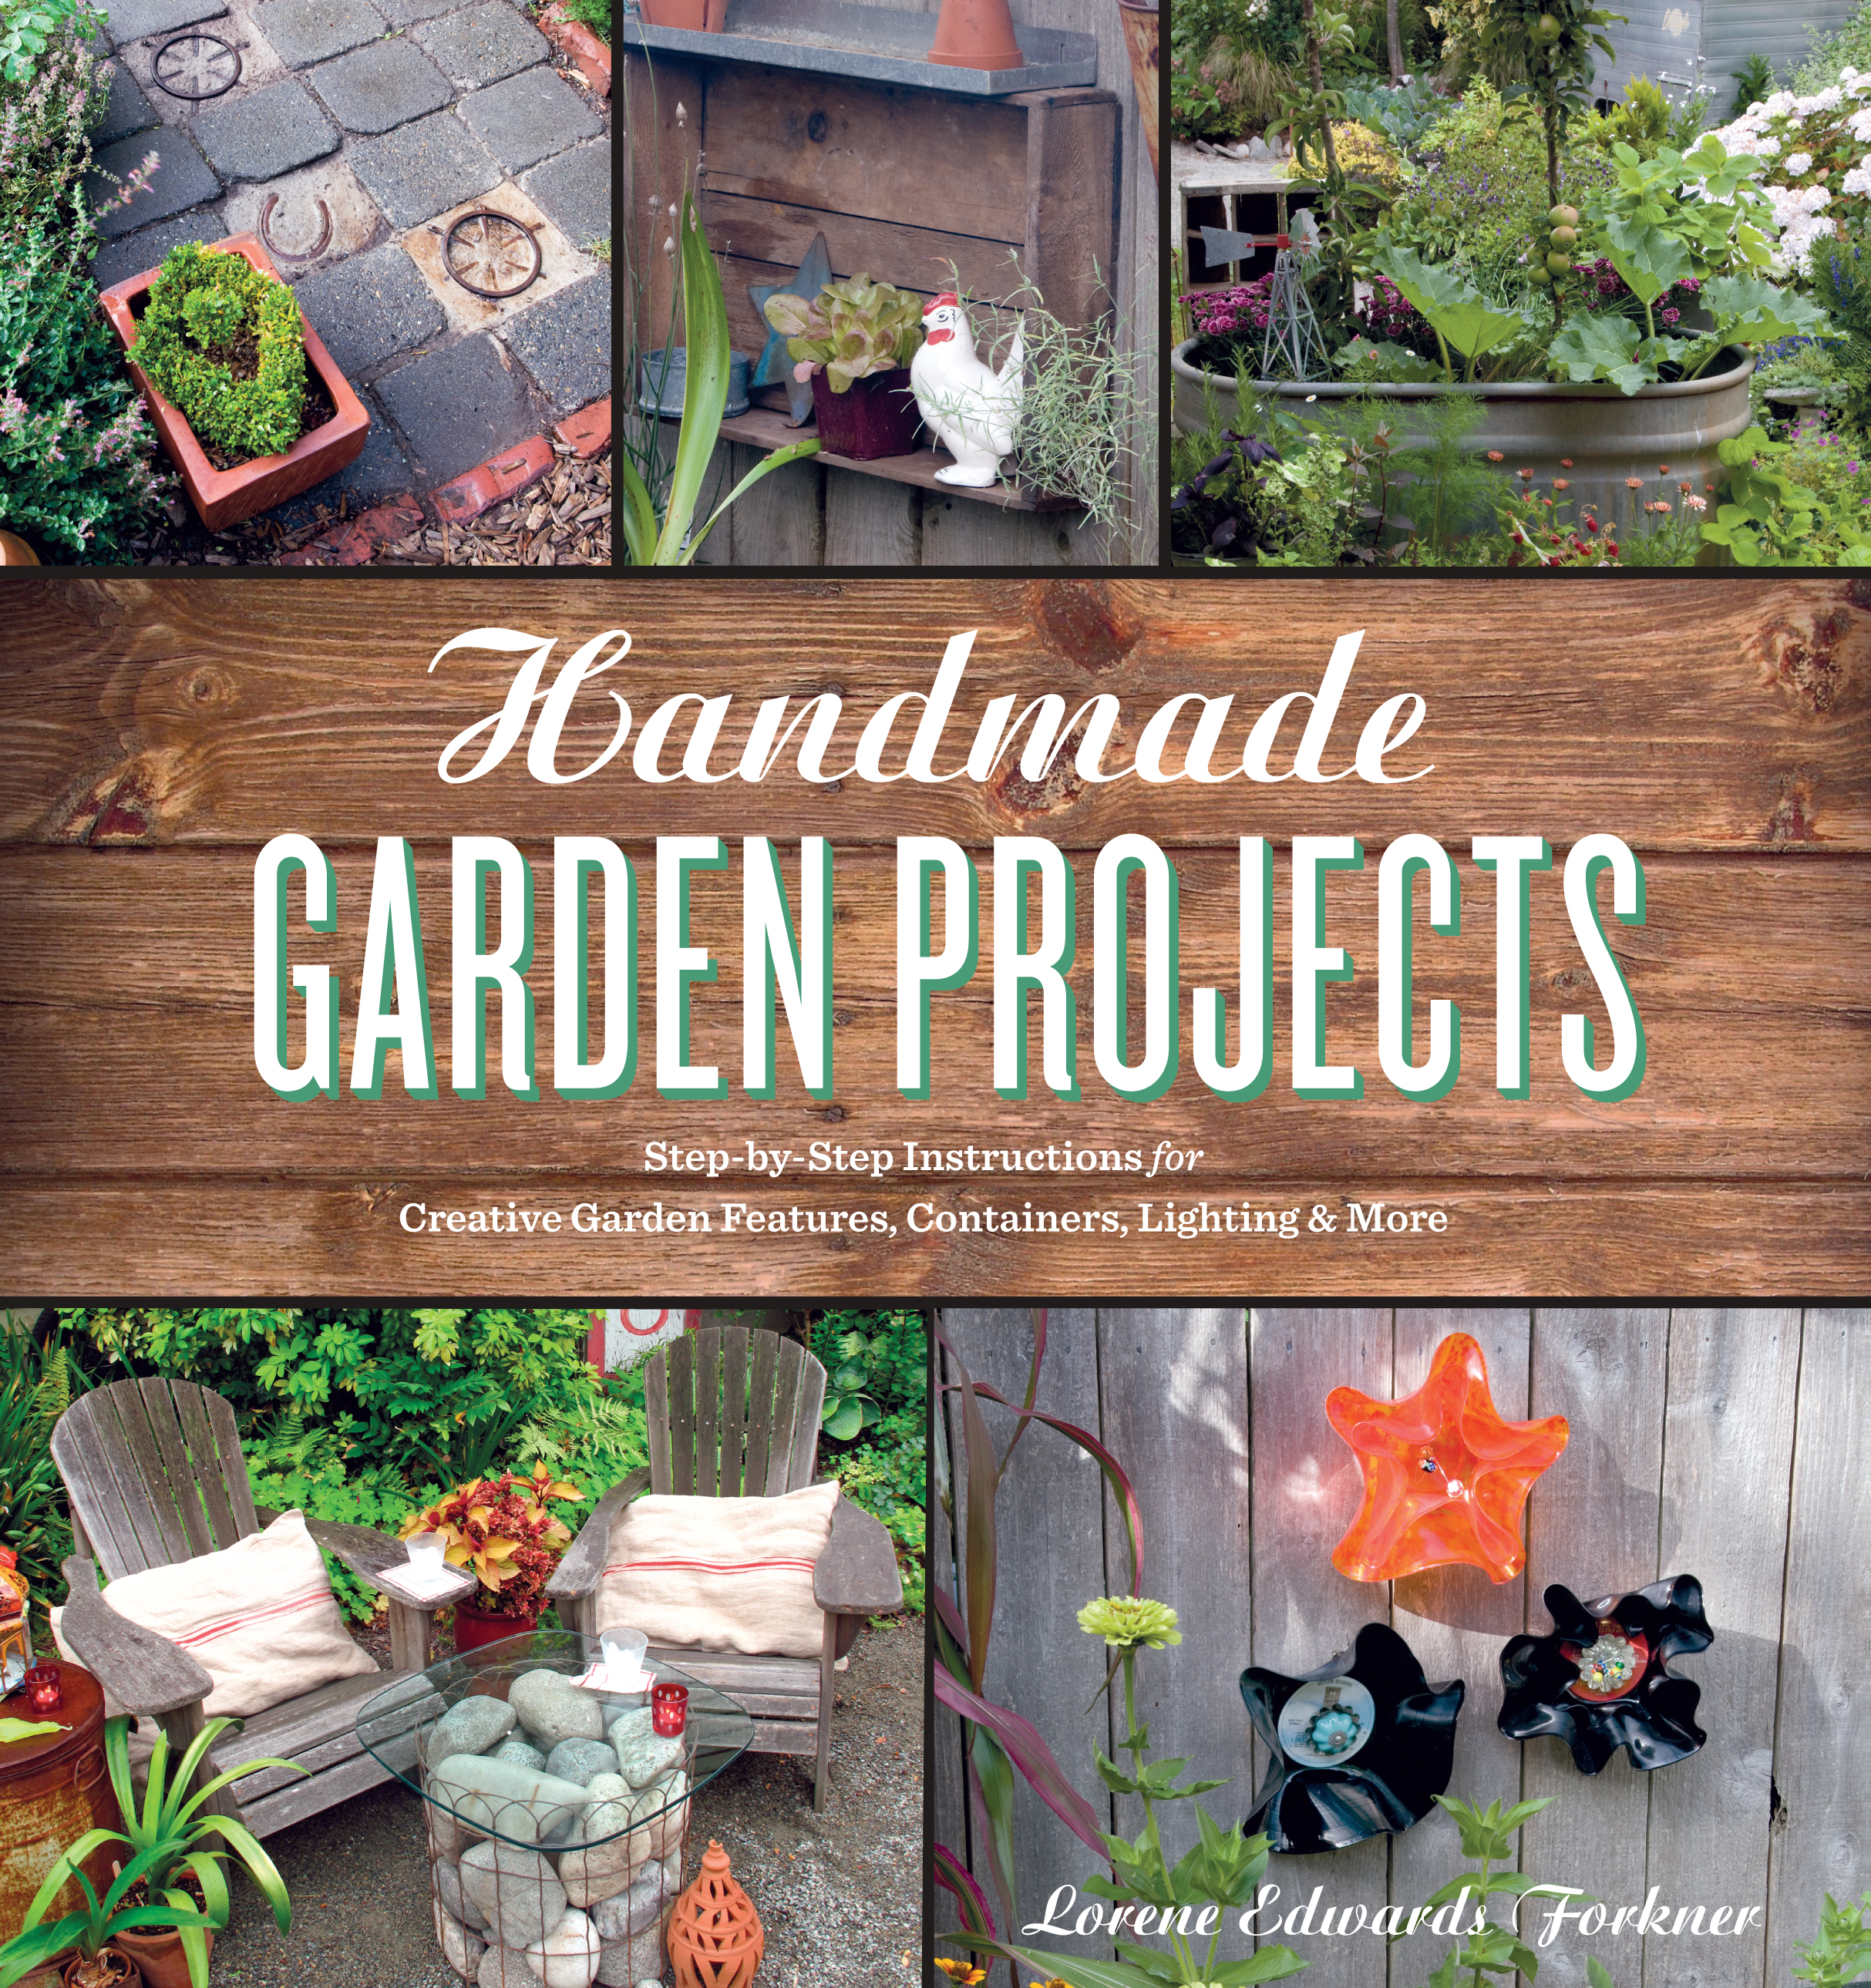 Handmade Garden Projects Step-by-Step Instructions for Creative Garden Features, Containers, Lighting & More